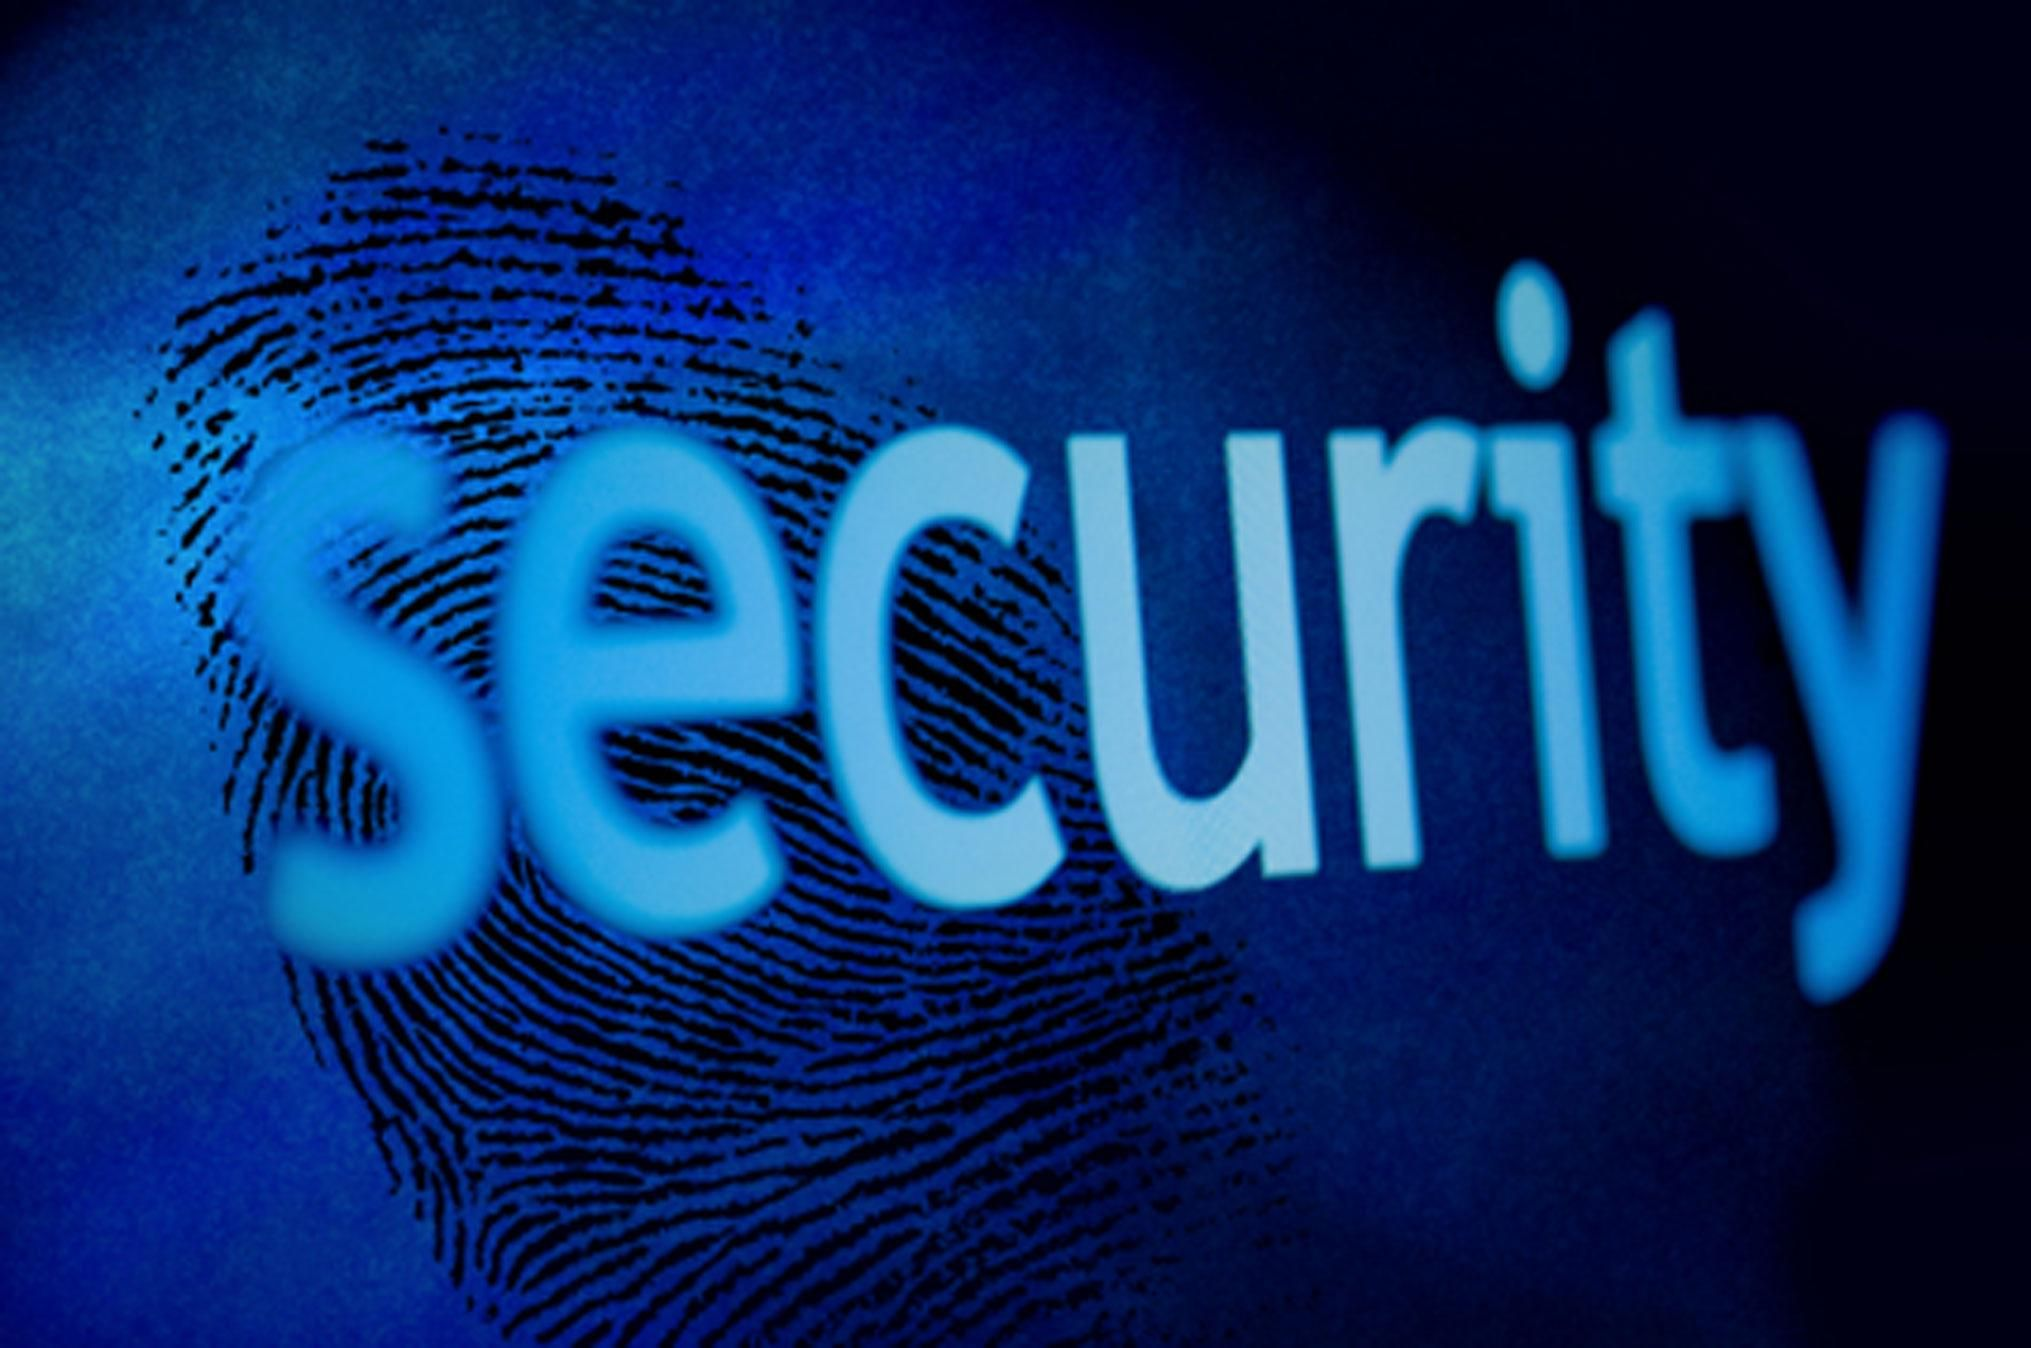 Security wallpapers quality security hd wallpapers bwp - Surveillance wallpaper ...